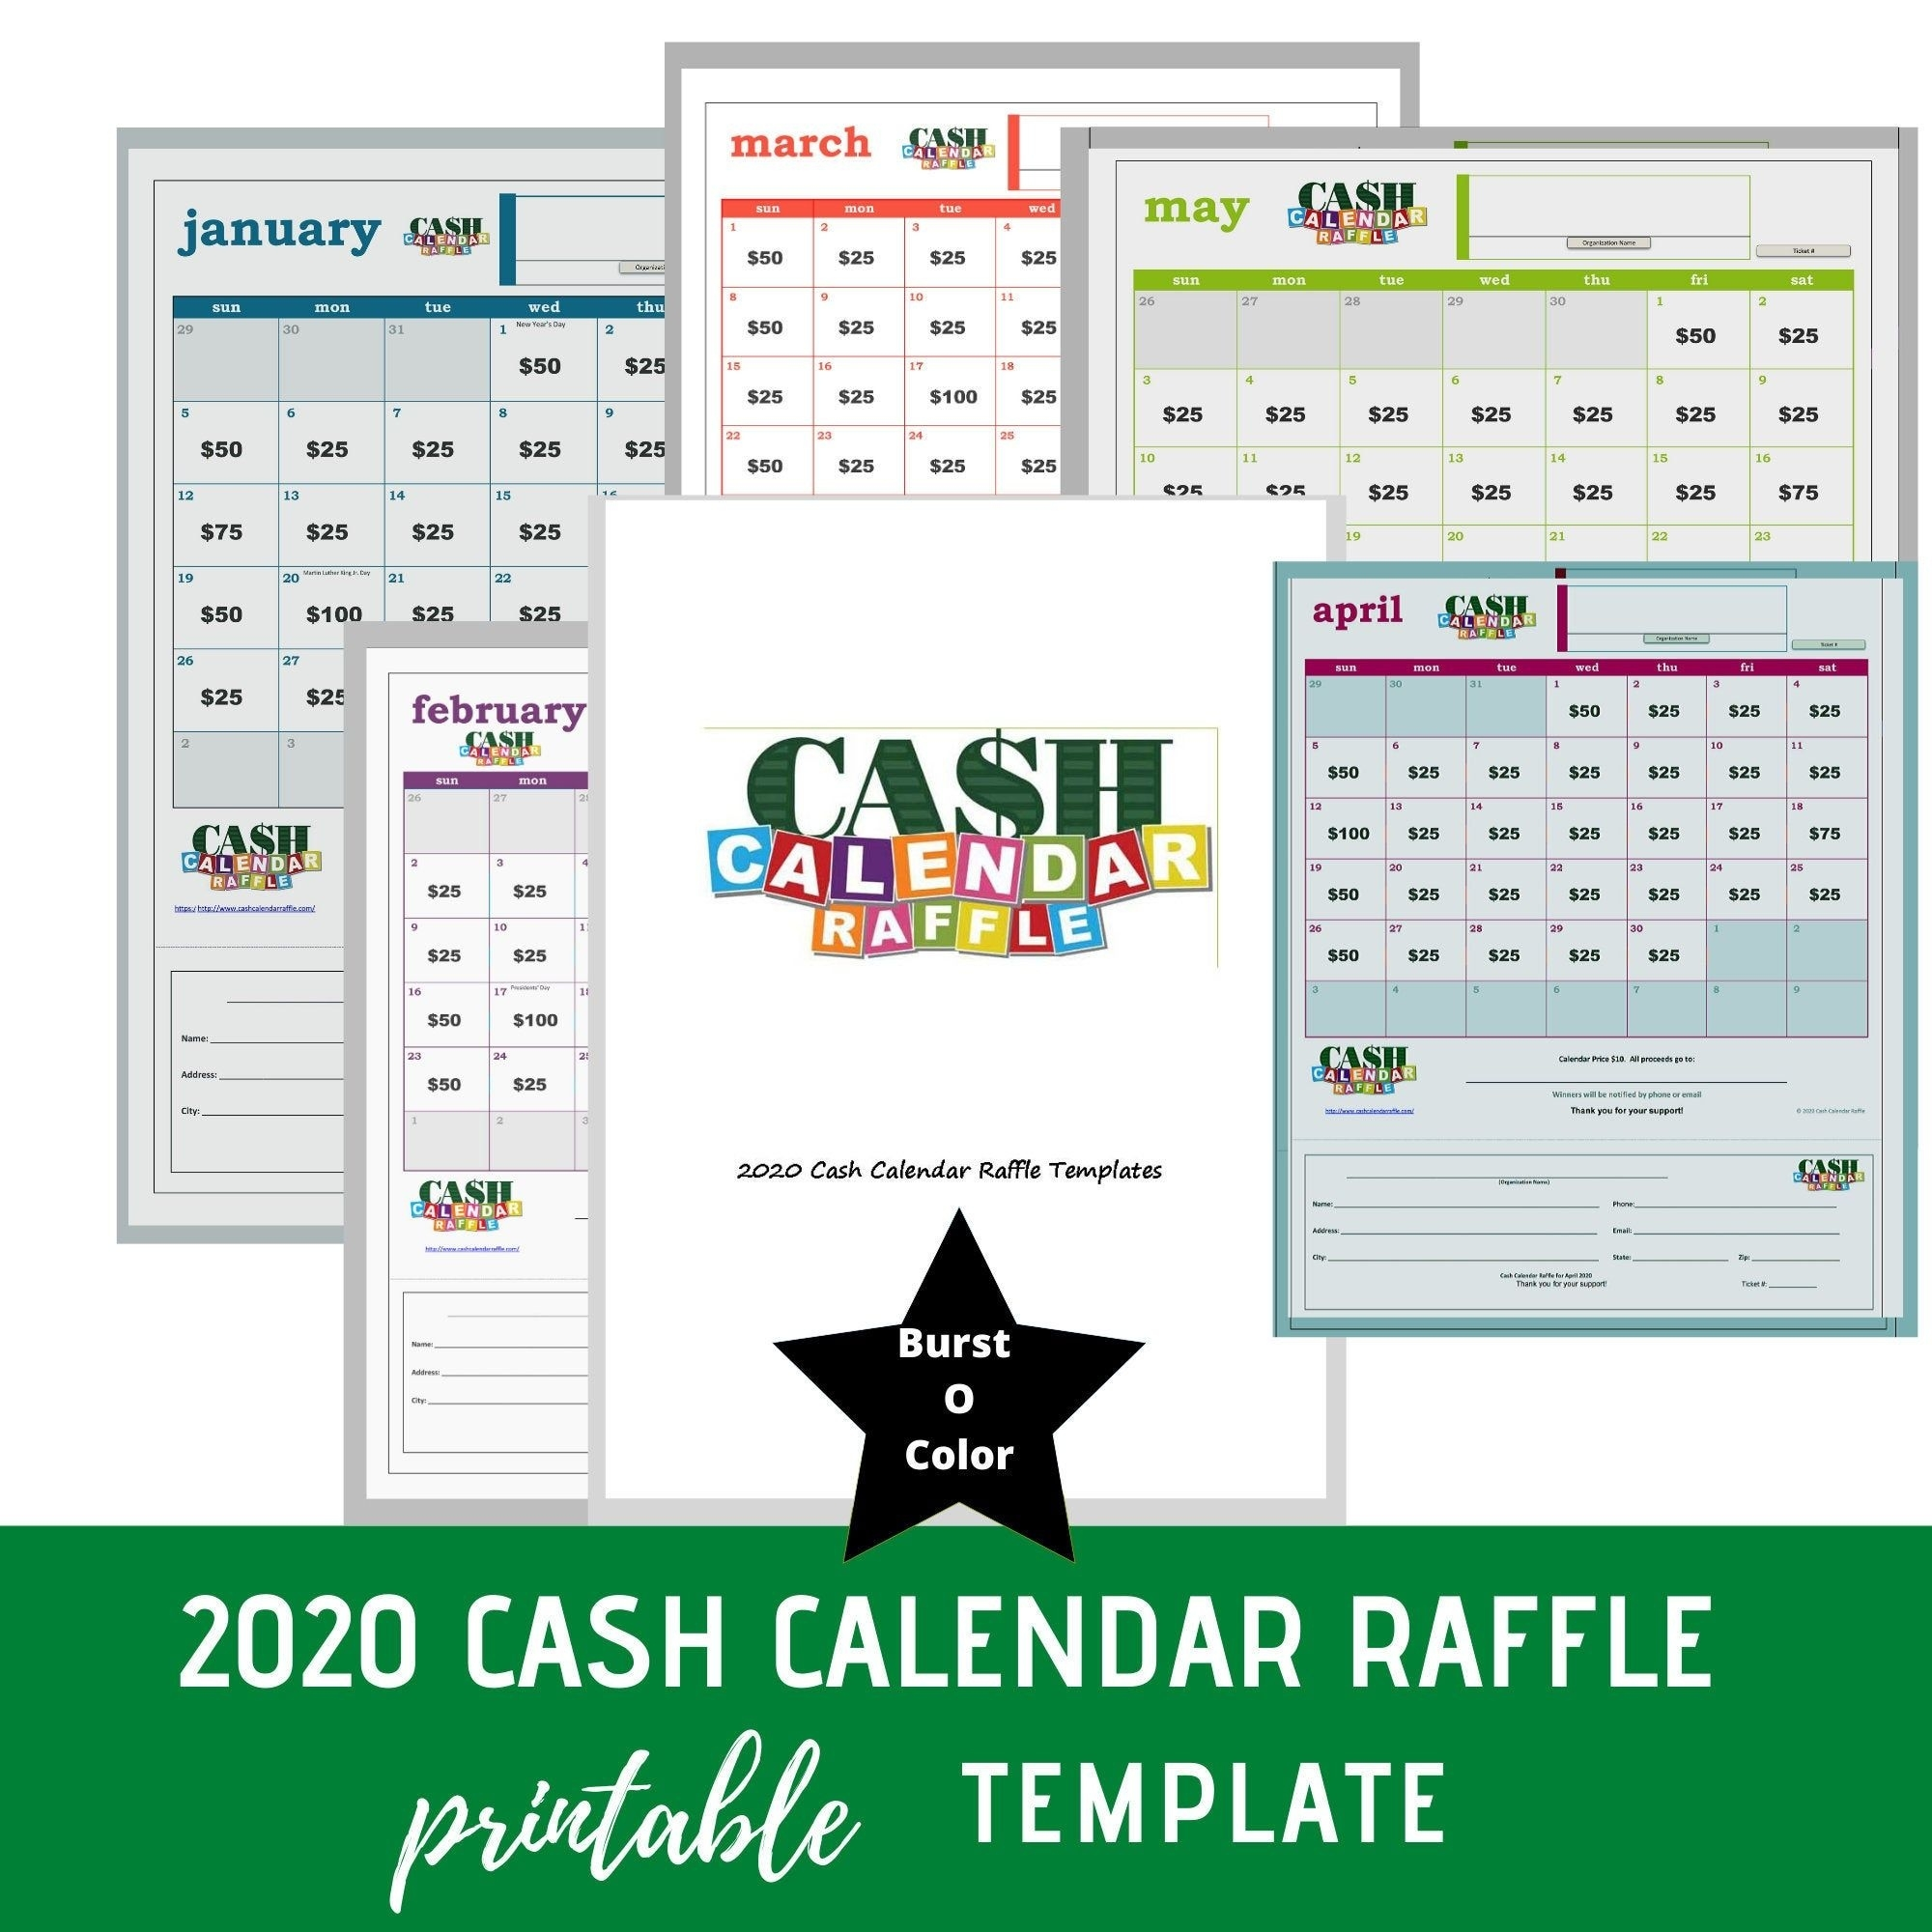 Cash Calendar Raffle Template (Burst O Color) In 2020 Free Calendar Raffle Template